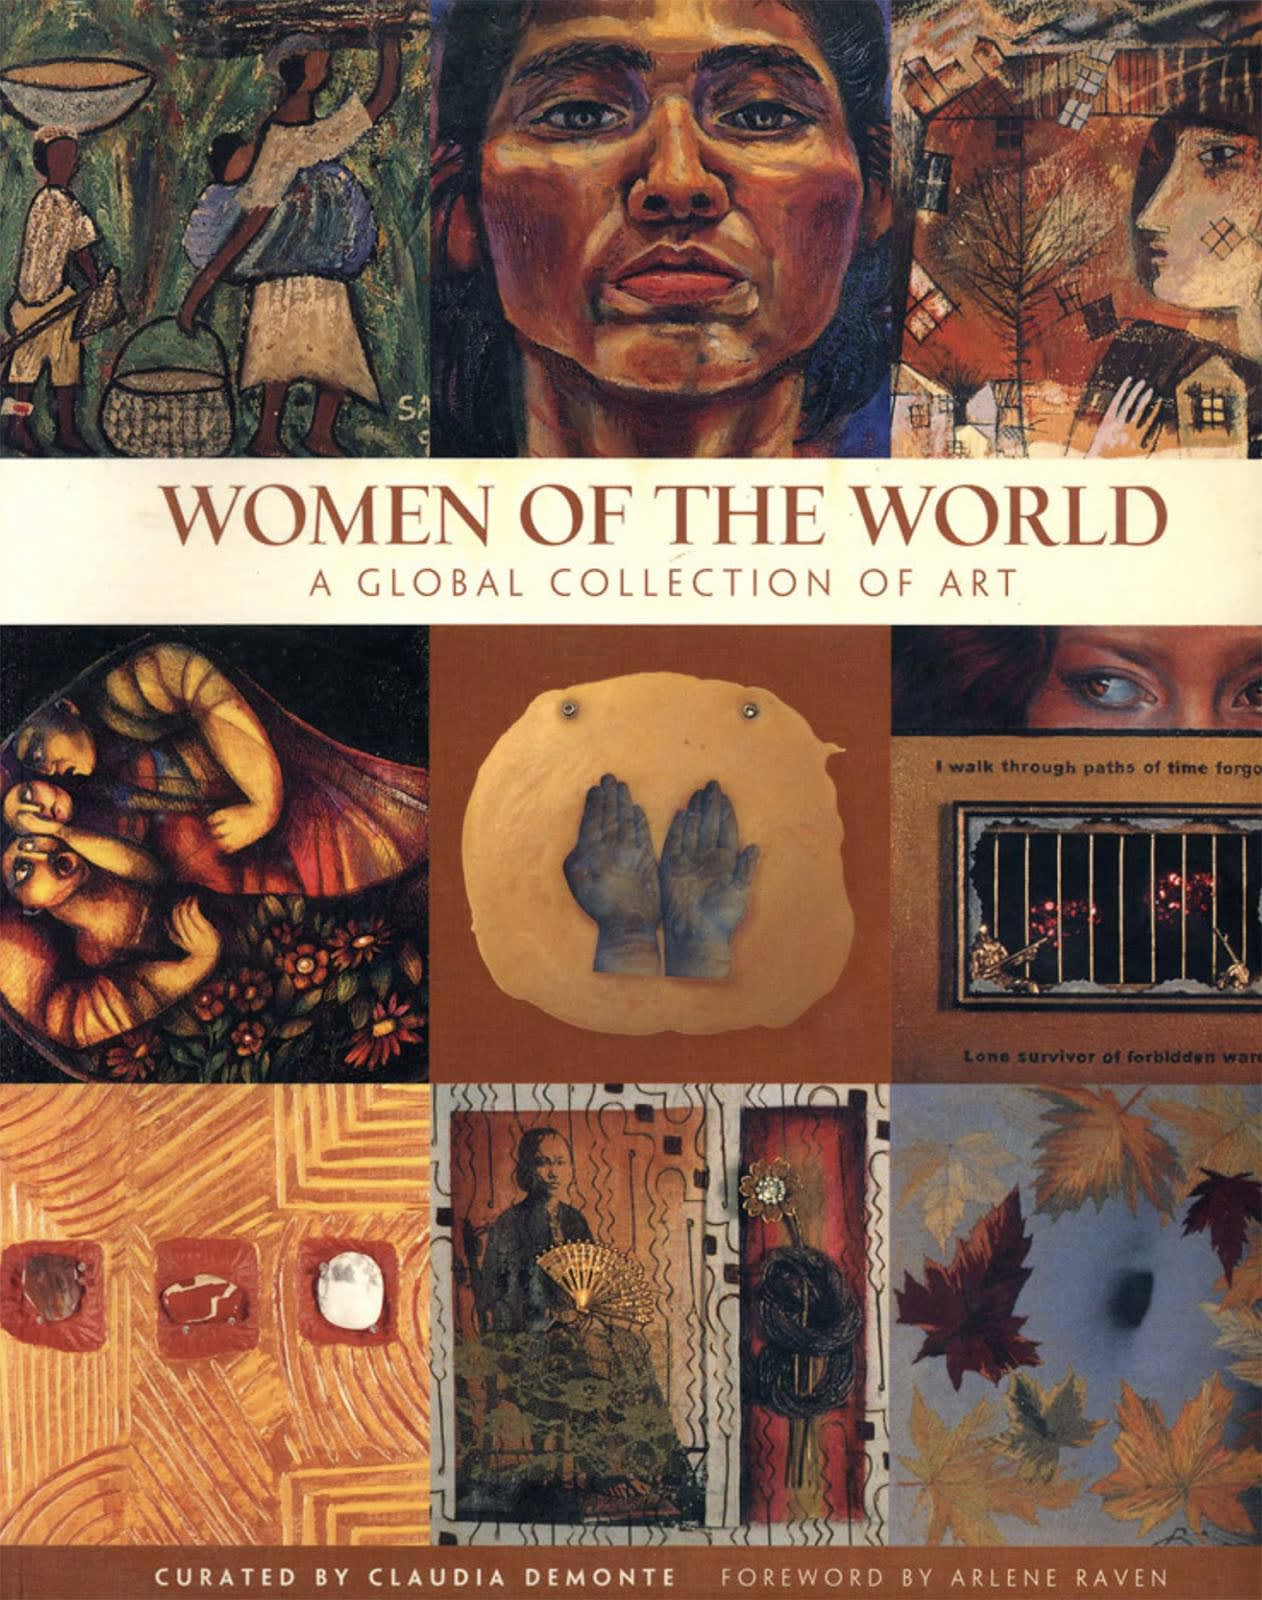 Global Woman Project 2000-2007